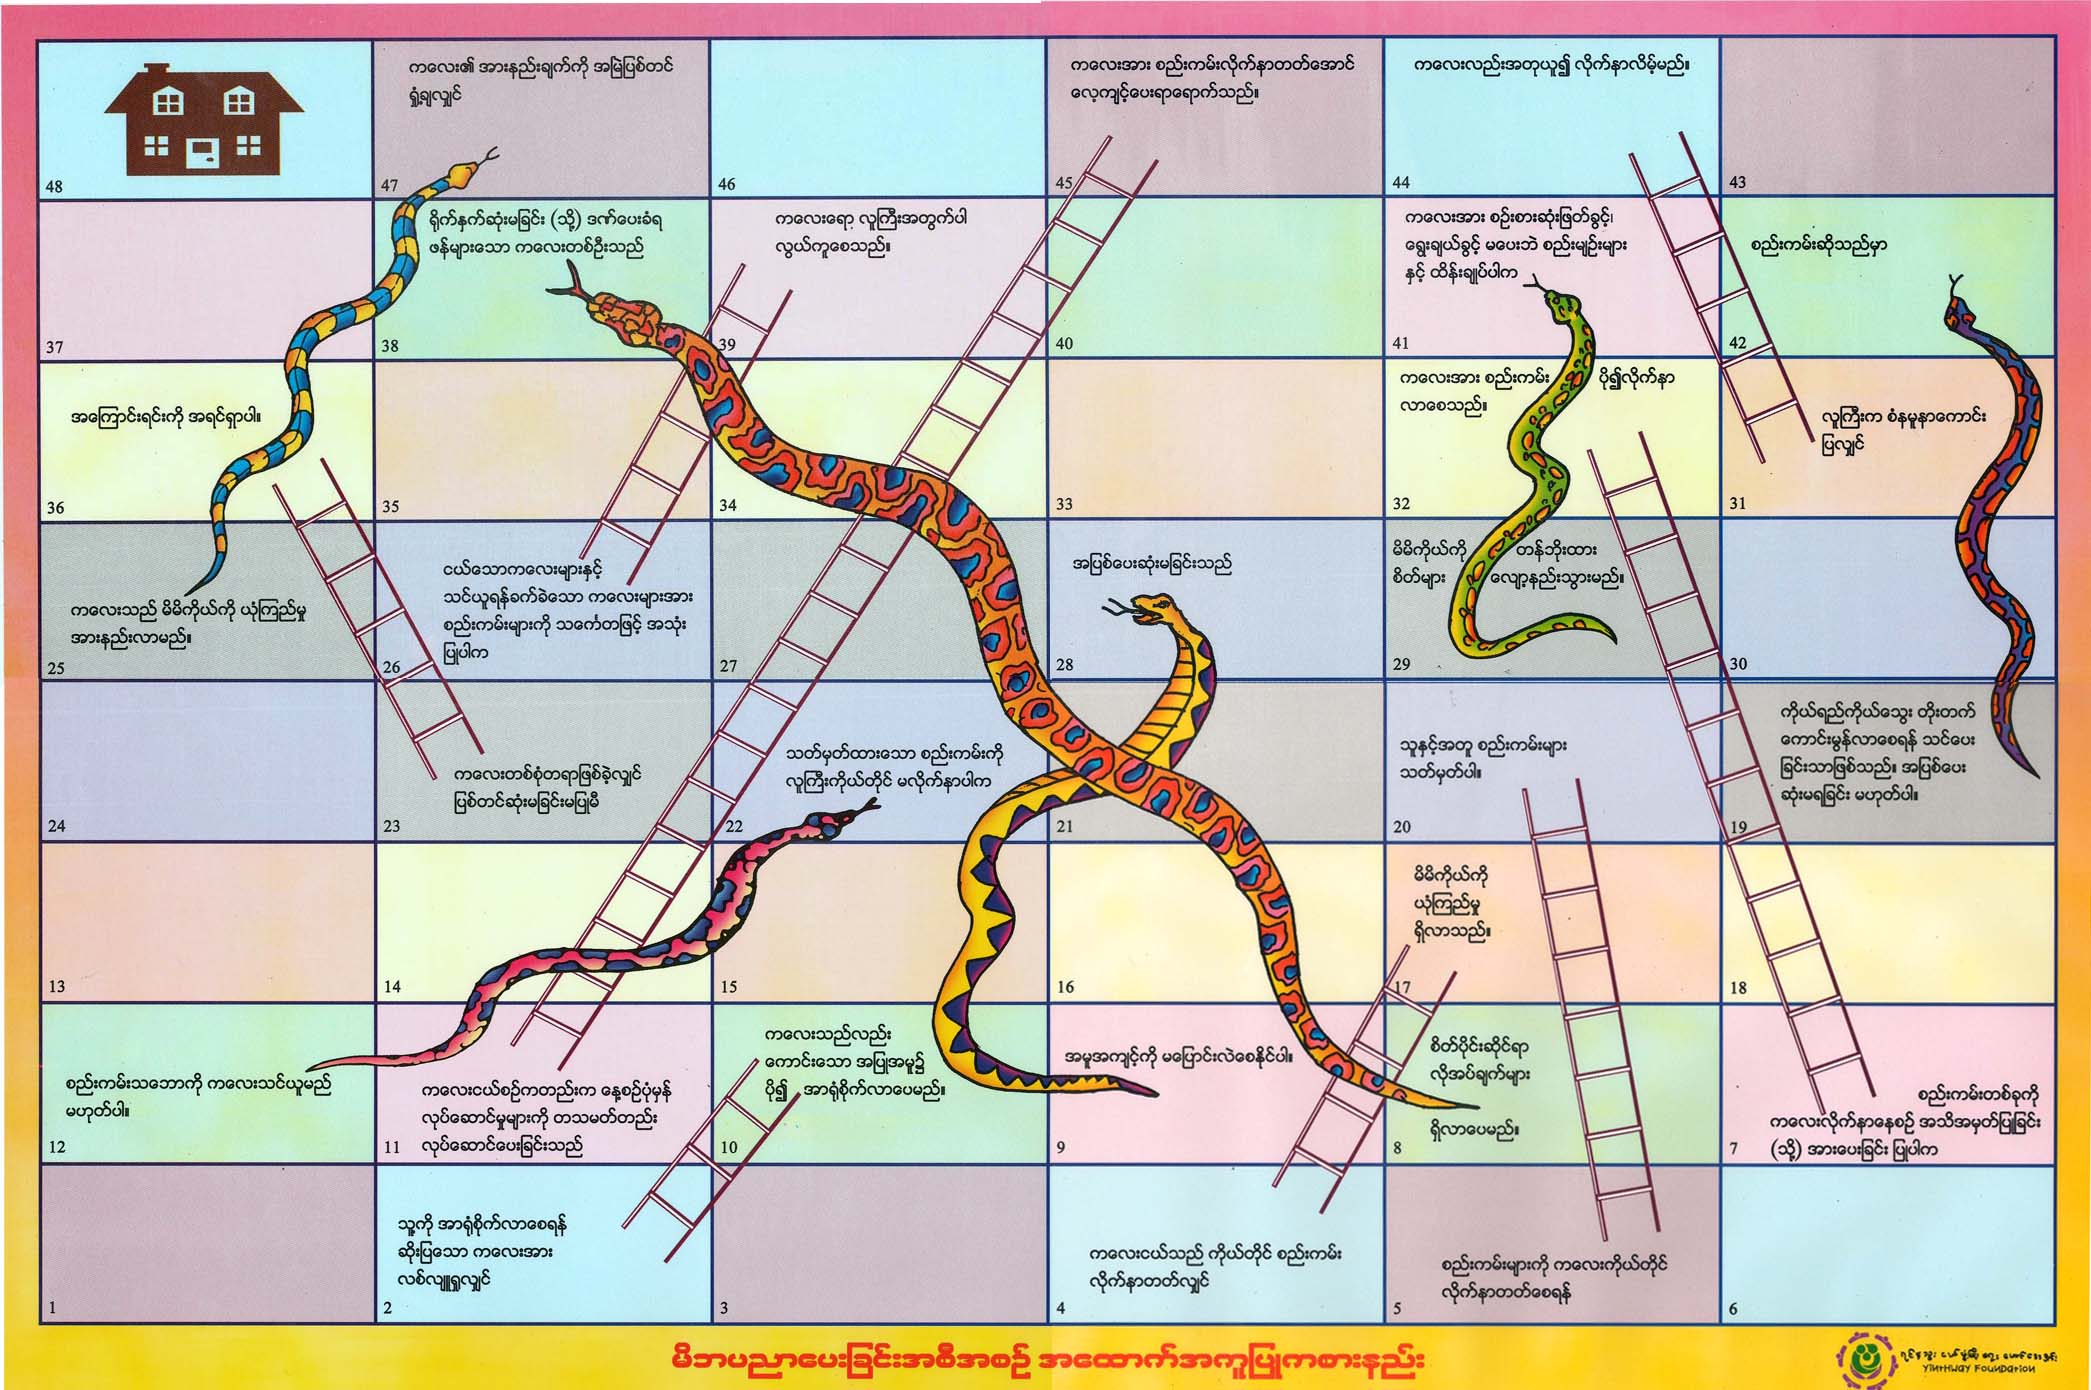 snakes and ladders template pdf - snake and ladder game board to print new calendar